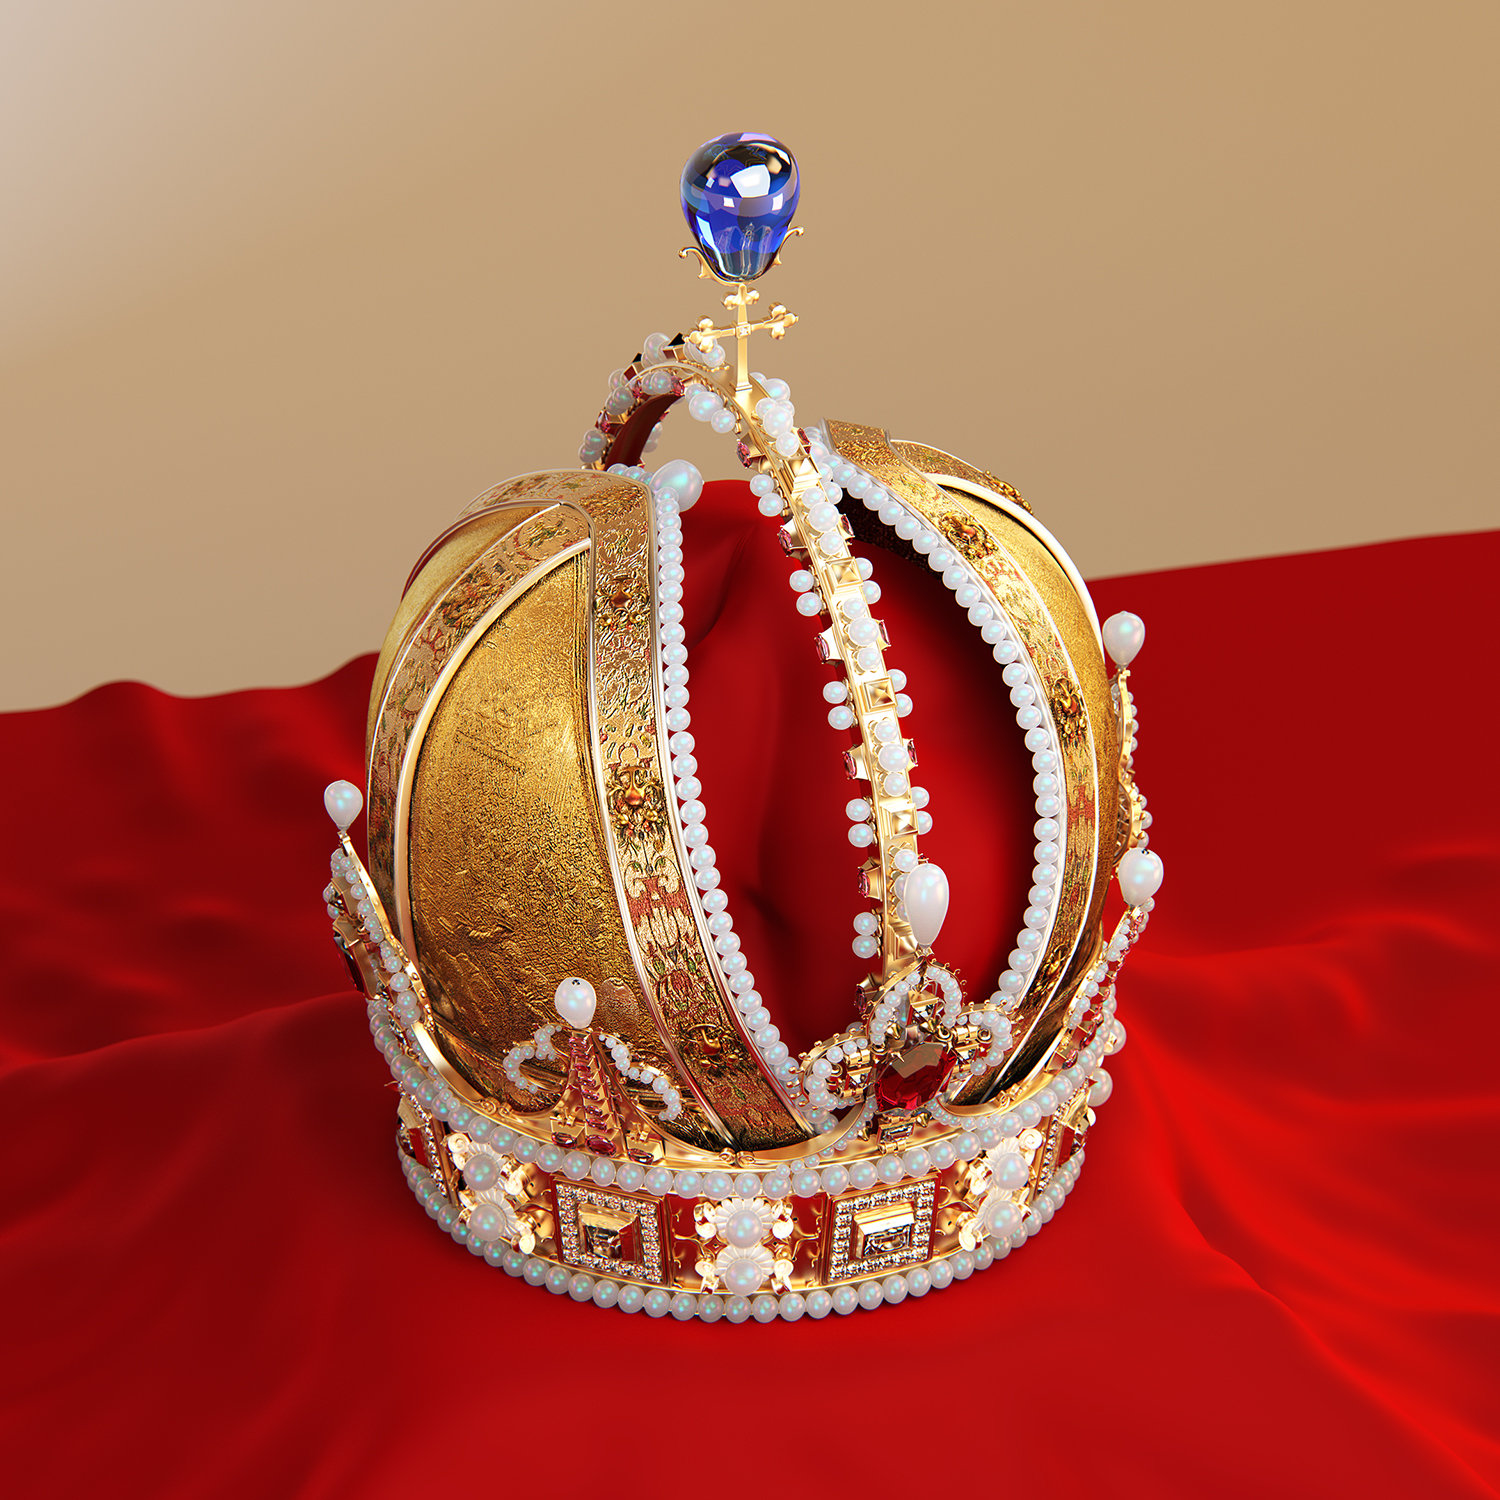 Michael marcondes imperial crown02